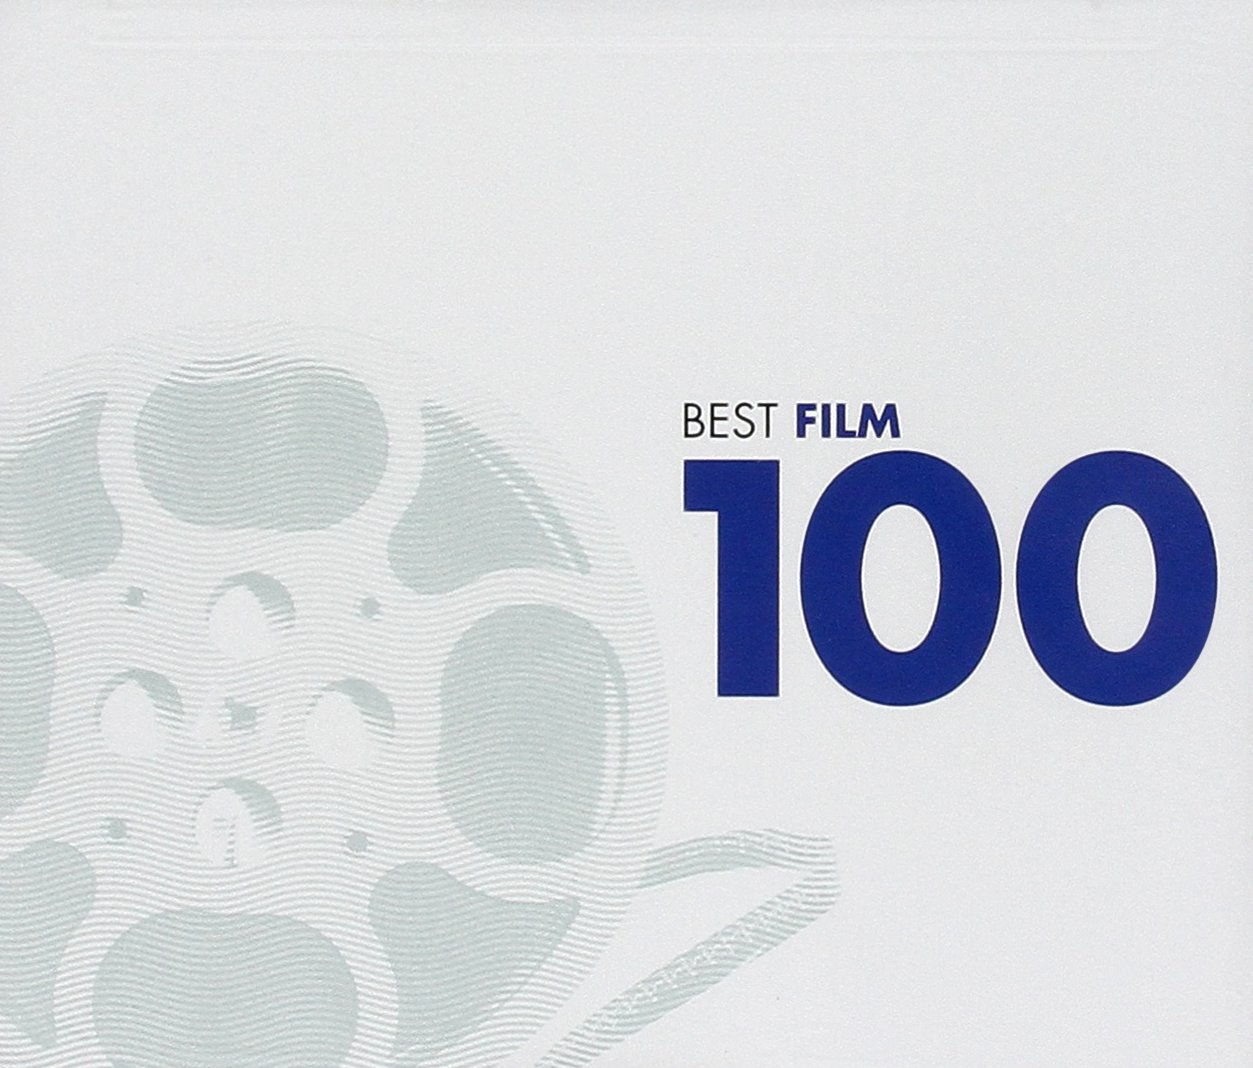 Best Film Classics 100 by Alliance